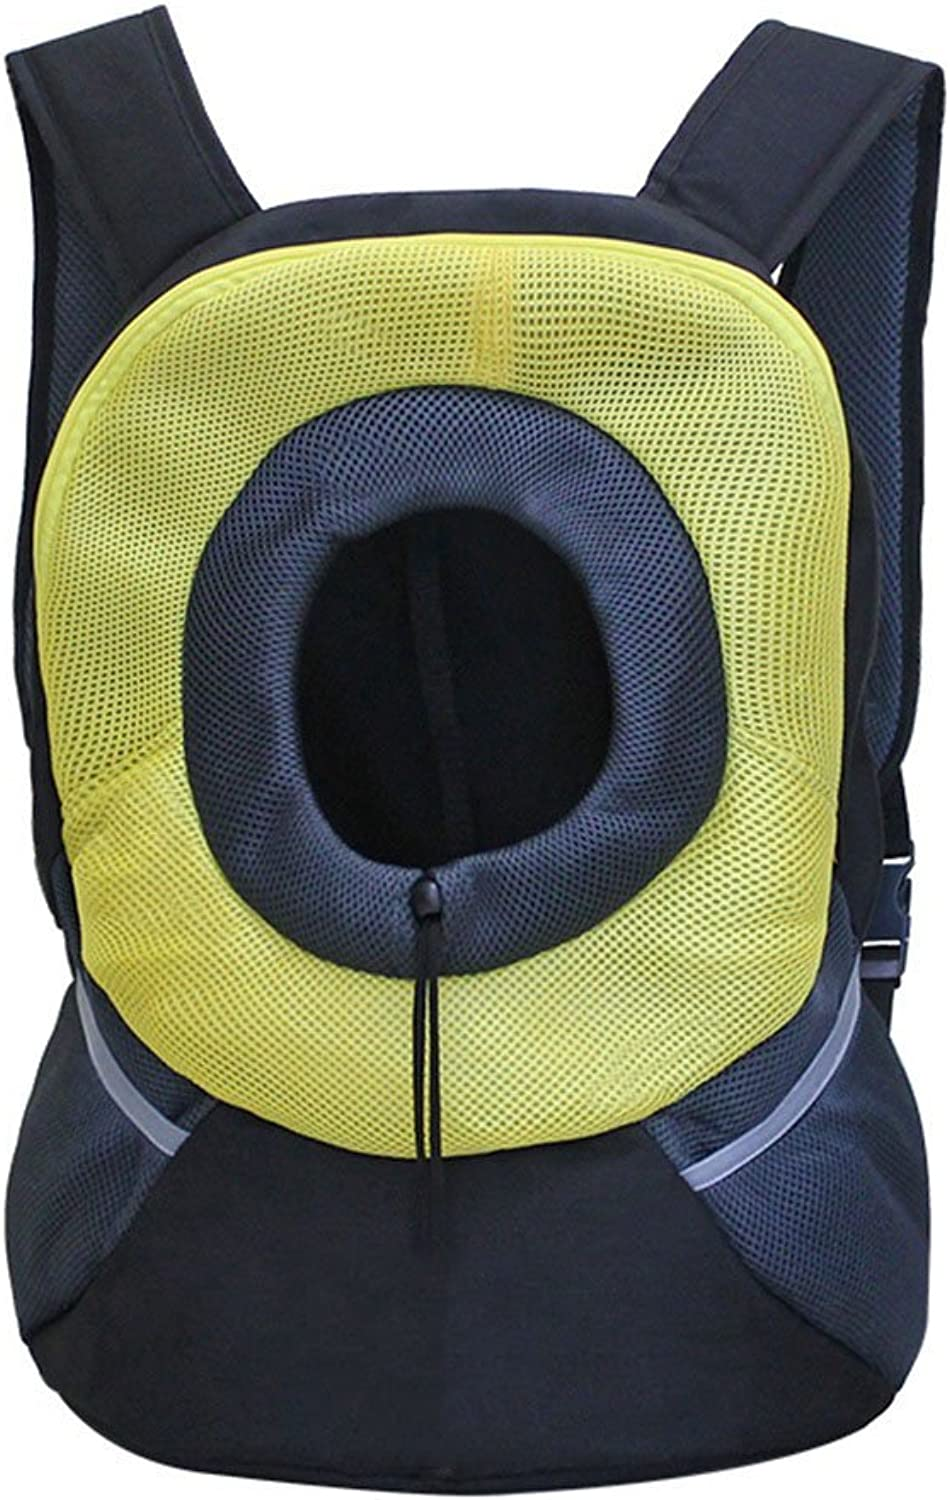 Head Out Design Pet Space Bag Fashion Portable Cat Bag Dog Bag Out Backpack Pet Bag Yellow Two Sizes (Size   S)